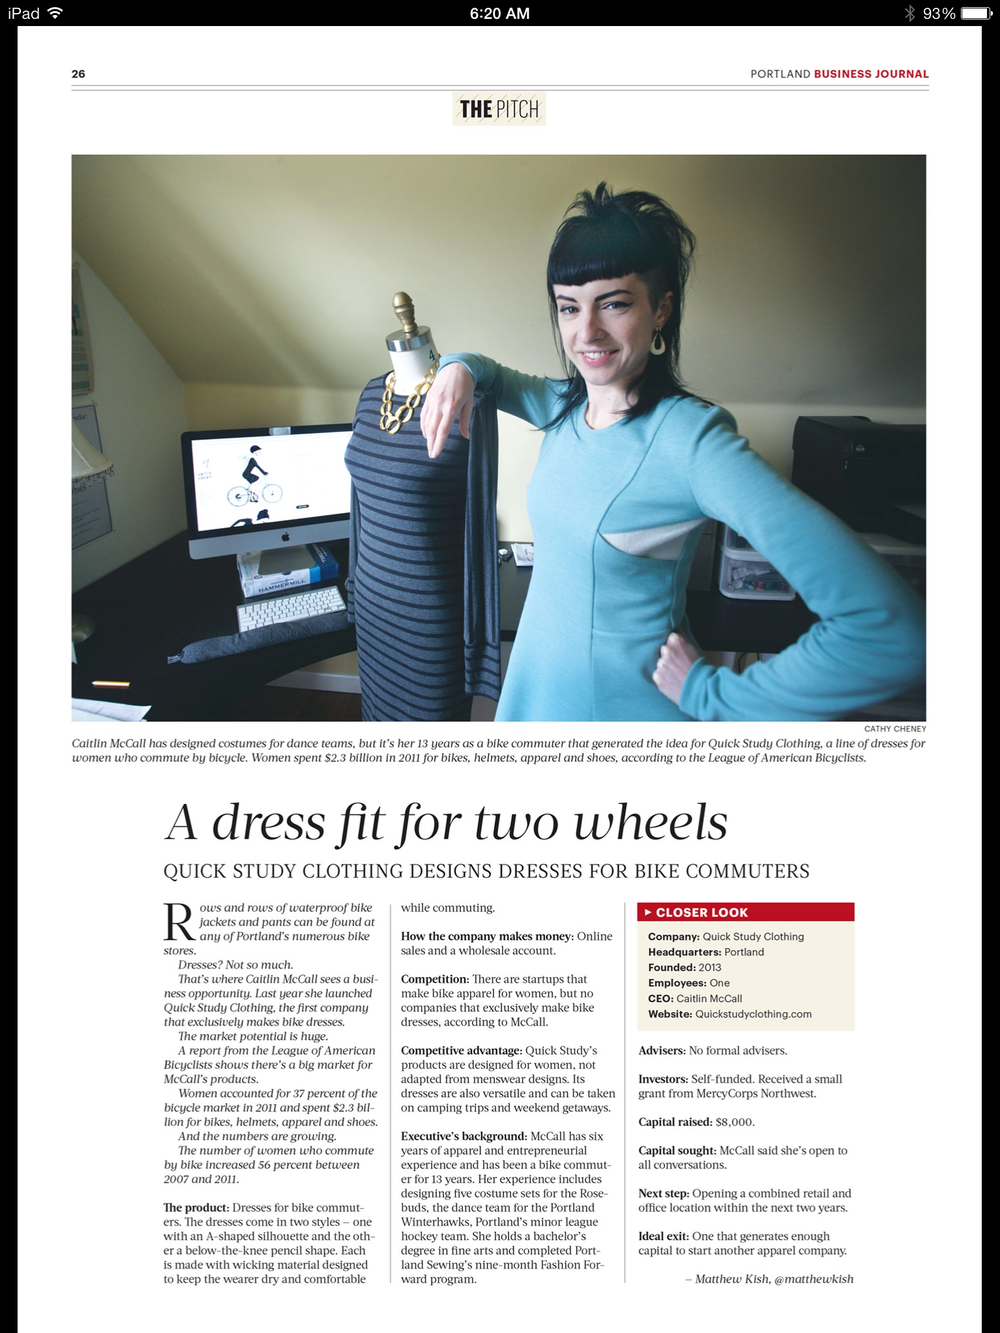 Portland Business Journal 3/21/14